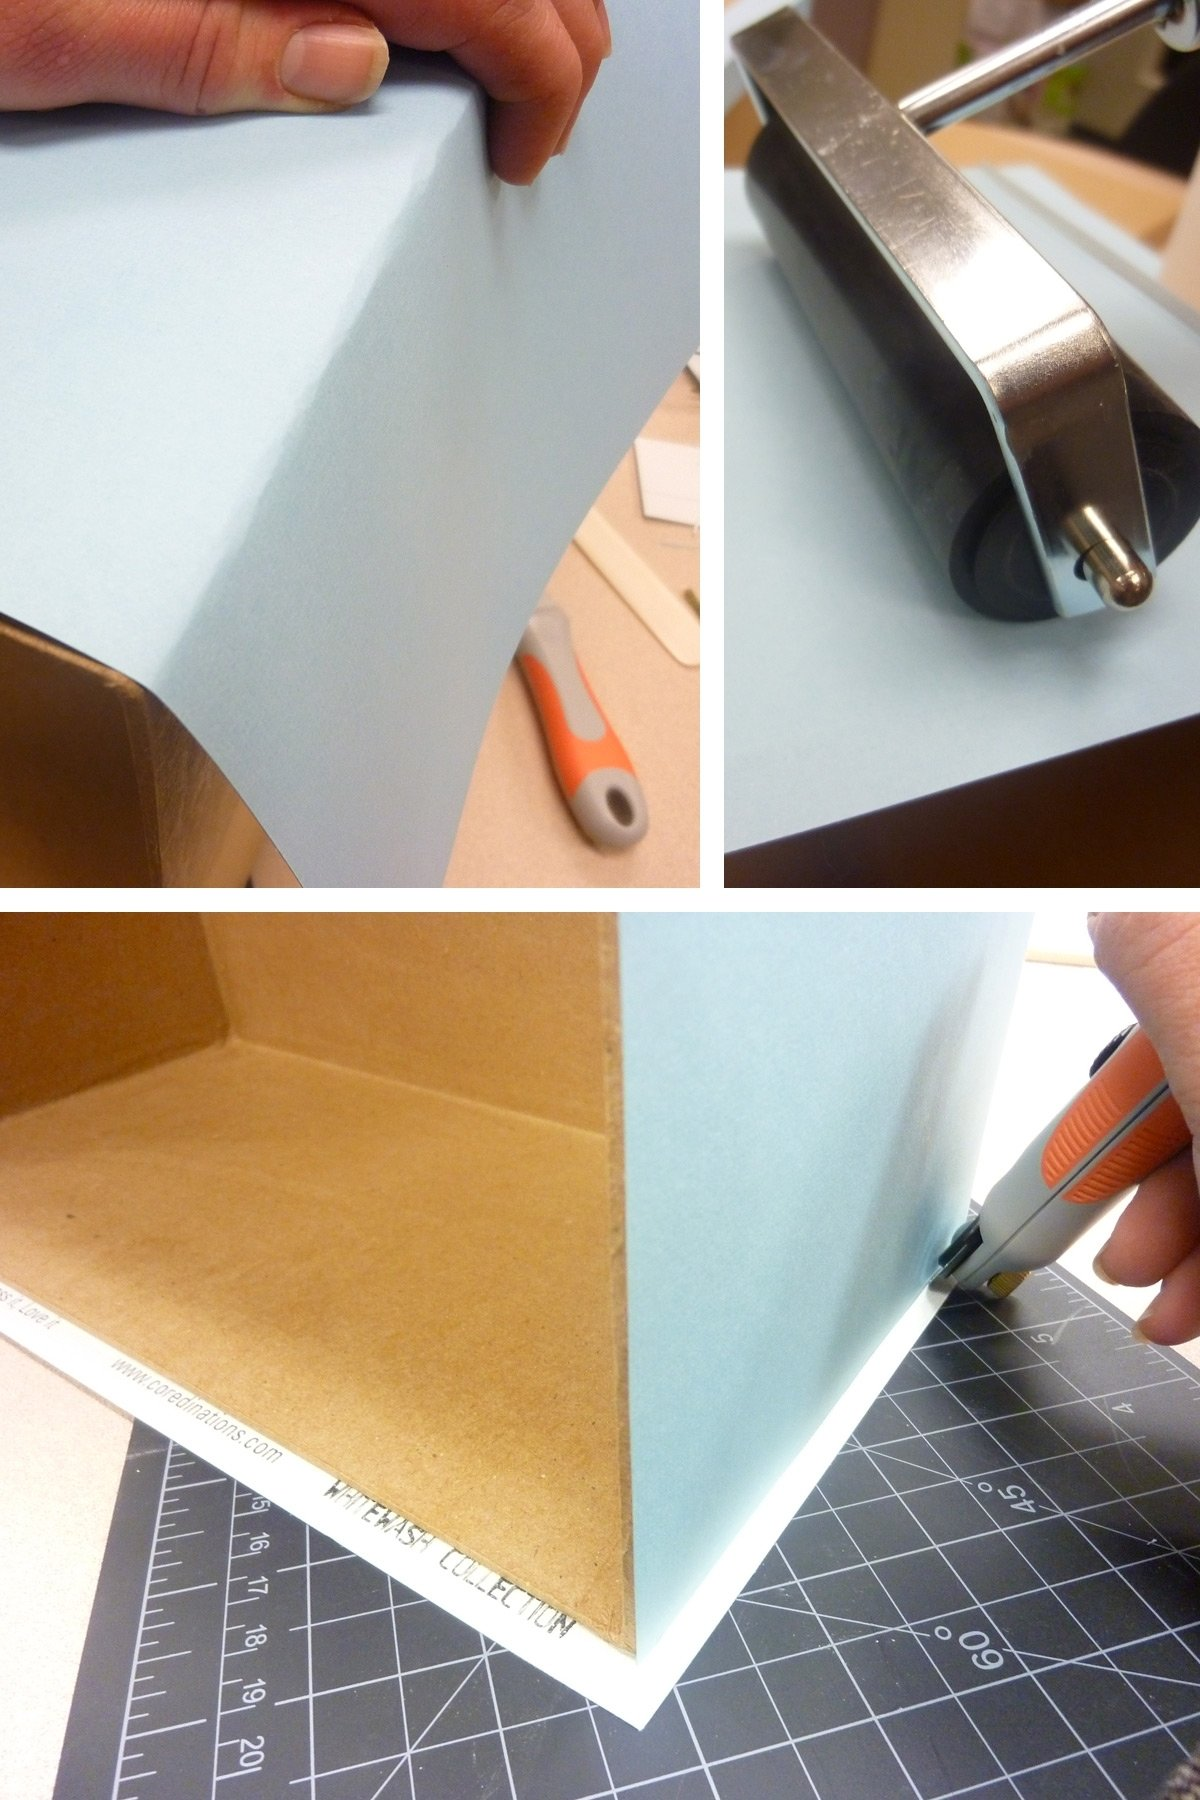 10 Unique Diy Wedding Card Box Ideas diy wedding card box project covering boxes with paper loversiq